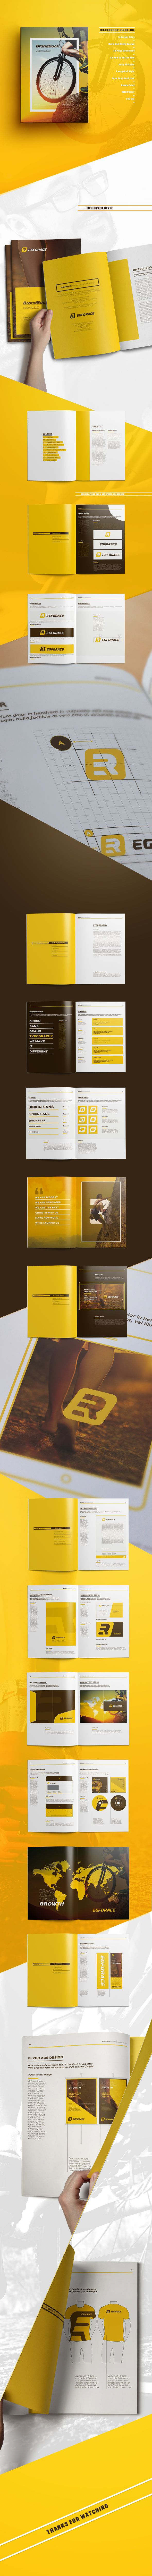 "Check out this @Behance project: ""BrandBook"" https://www.behance.net/gallery/31665207/BrandBook"